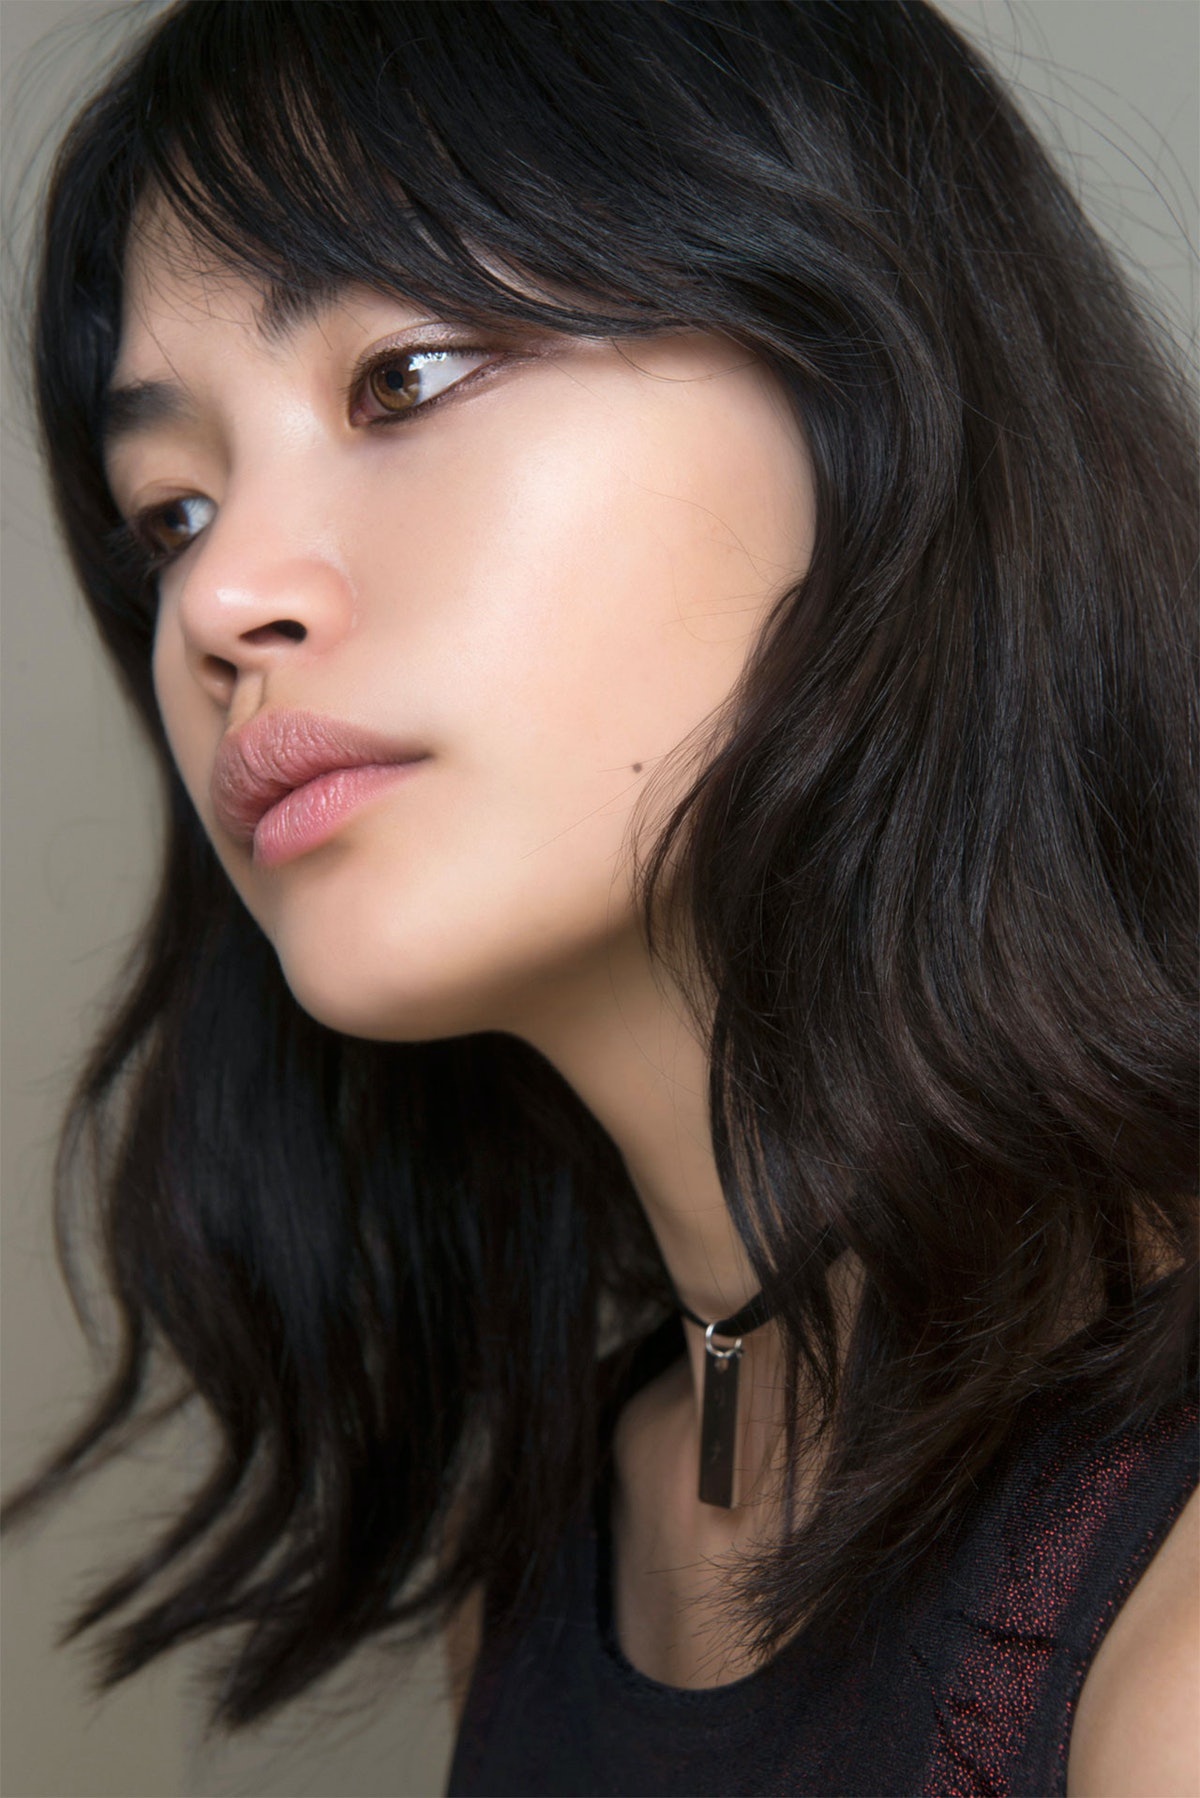 7 Life-Changing Beauty Ingredients You Don't Know About